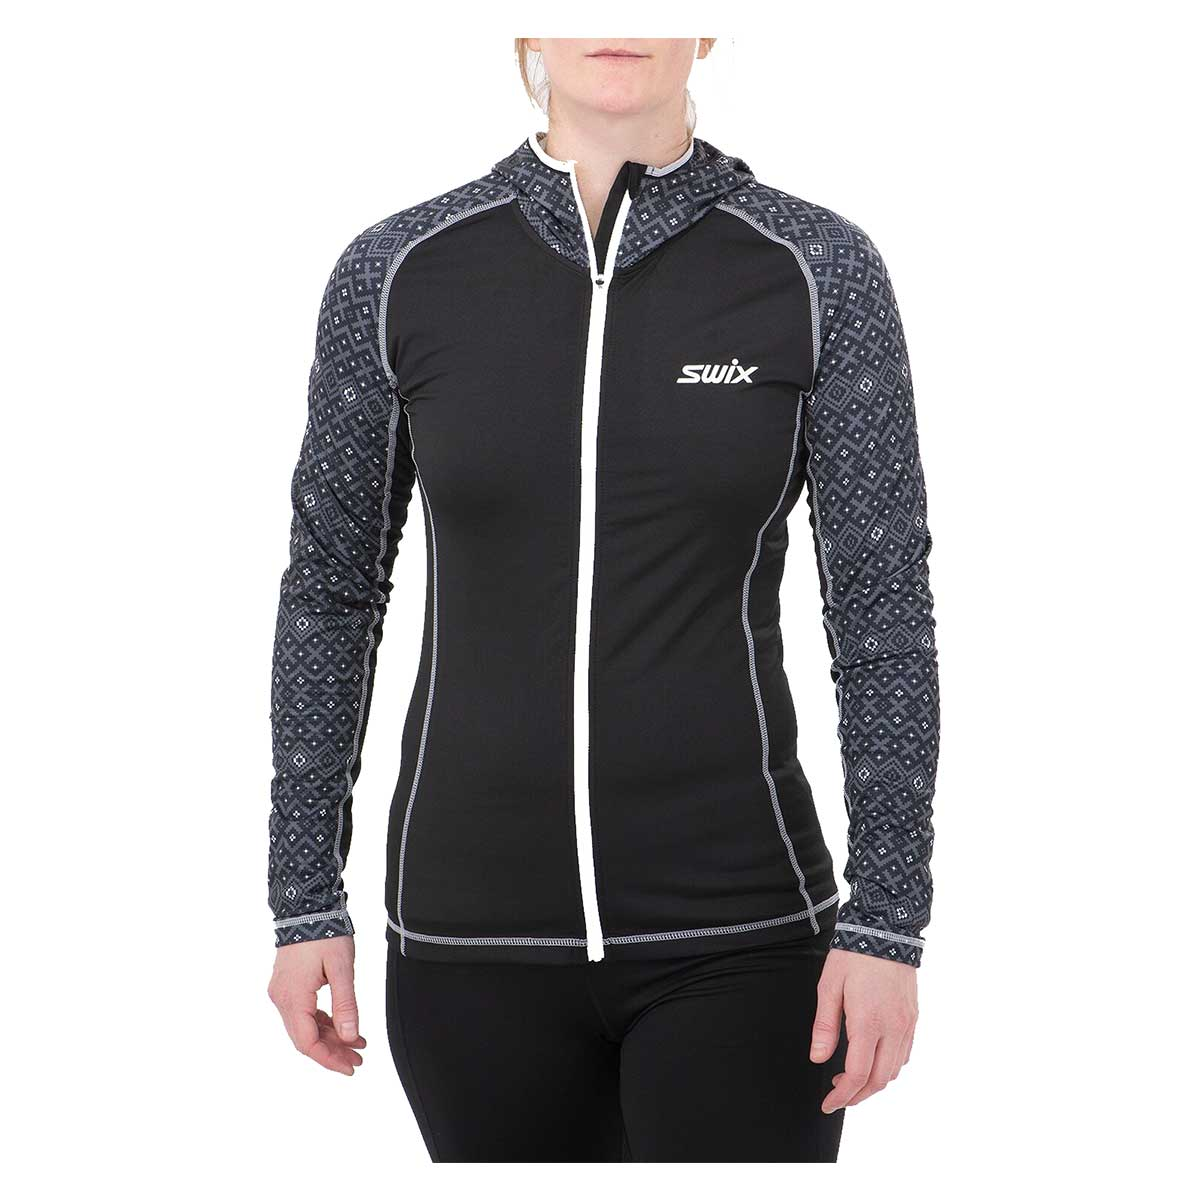 Swix Women's Myrene Full Zip Hoody in Magnet Print